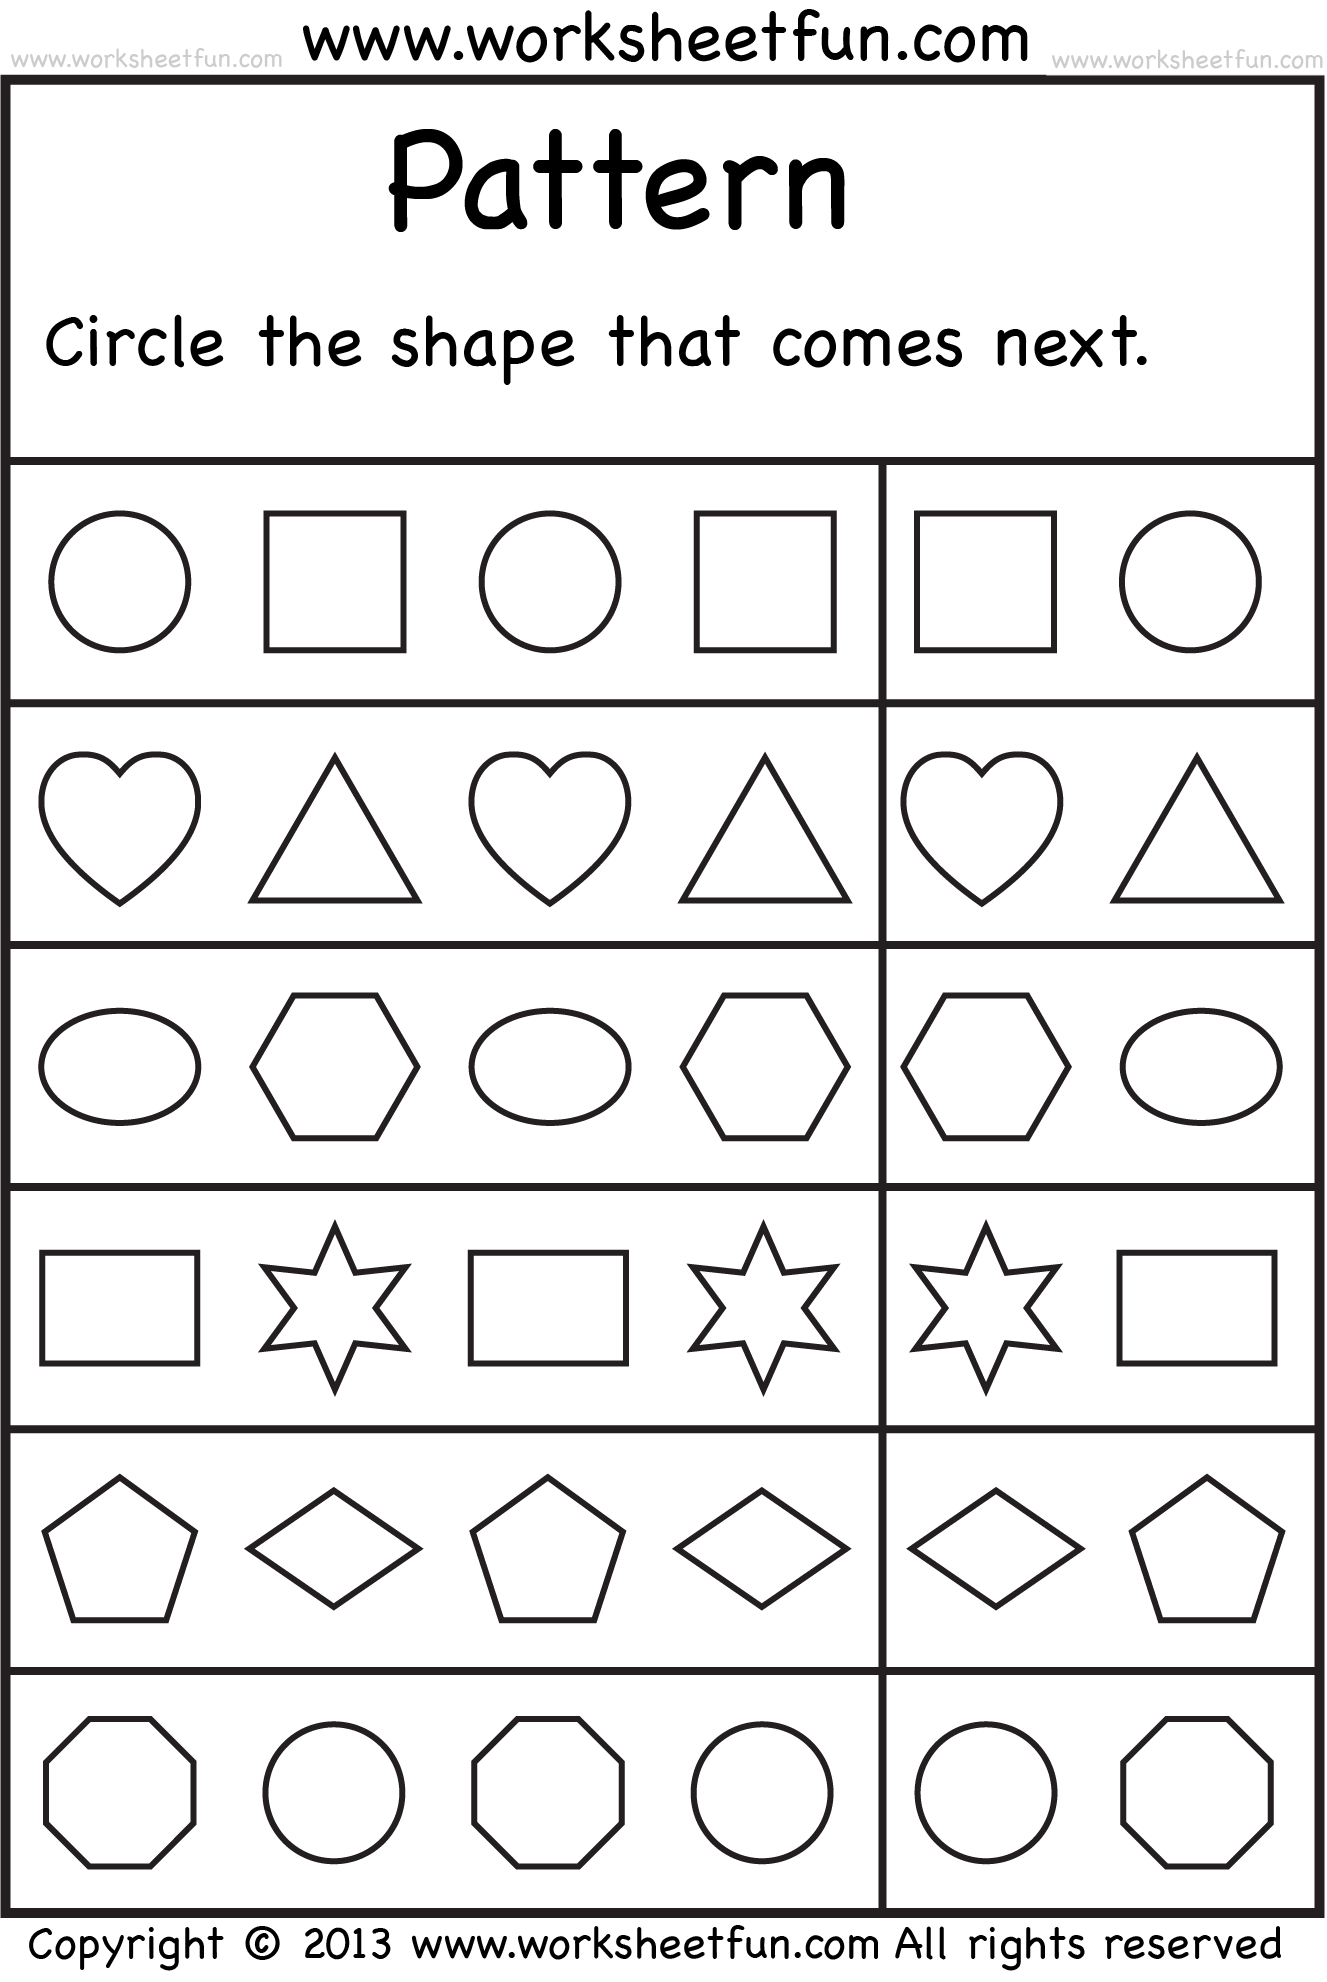 Worksheets Free Printable Educational Worksheets free printable worksheets worksheetfun craftsactvities and for preschooltoddler kindergarten printables activity pages lots of worksh